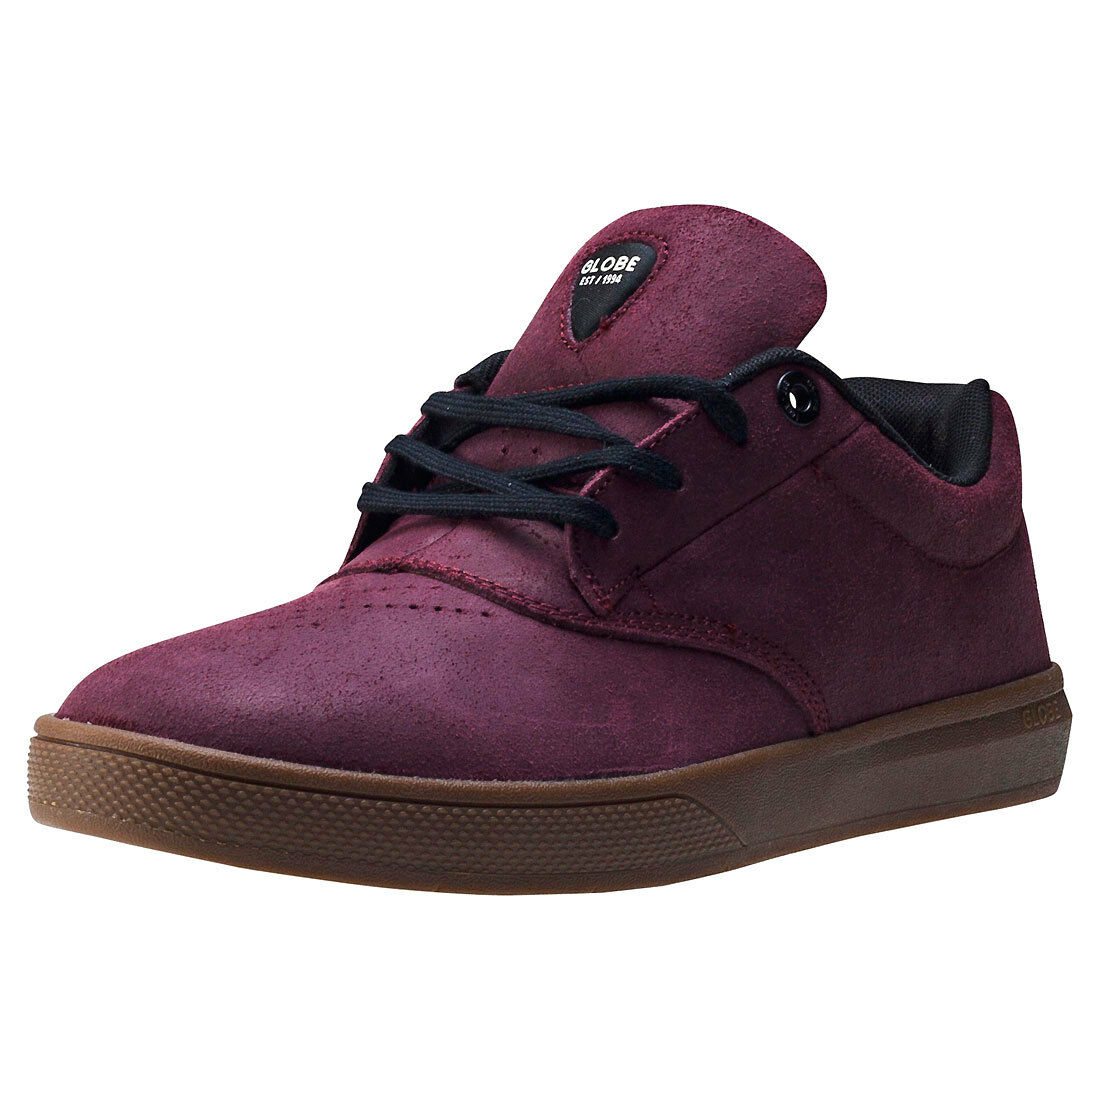 Globe The Eagle Sg   Herren - Burgundy Suede Trainers - Herren 7 UK 3116da